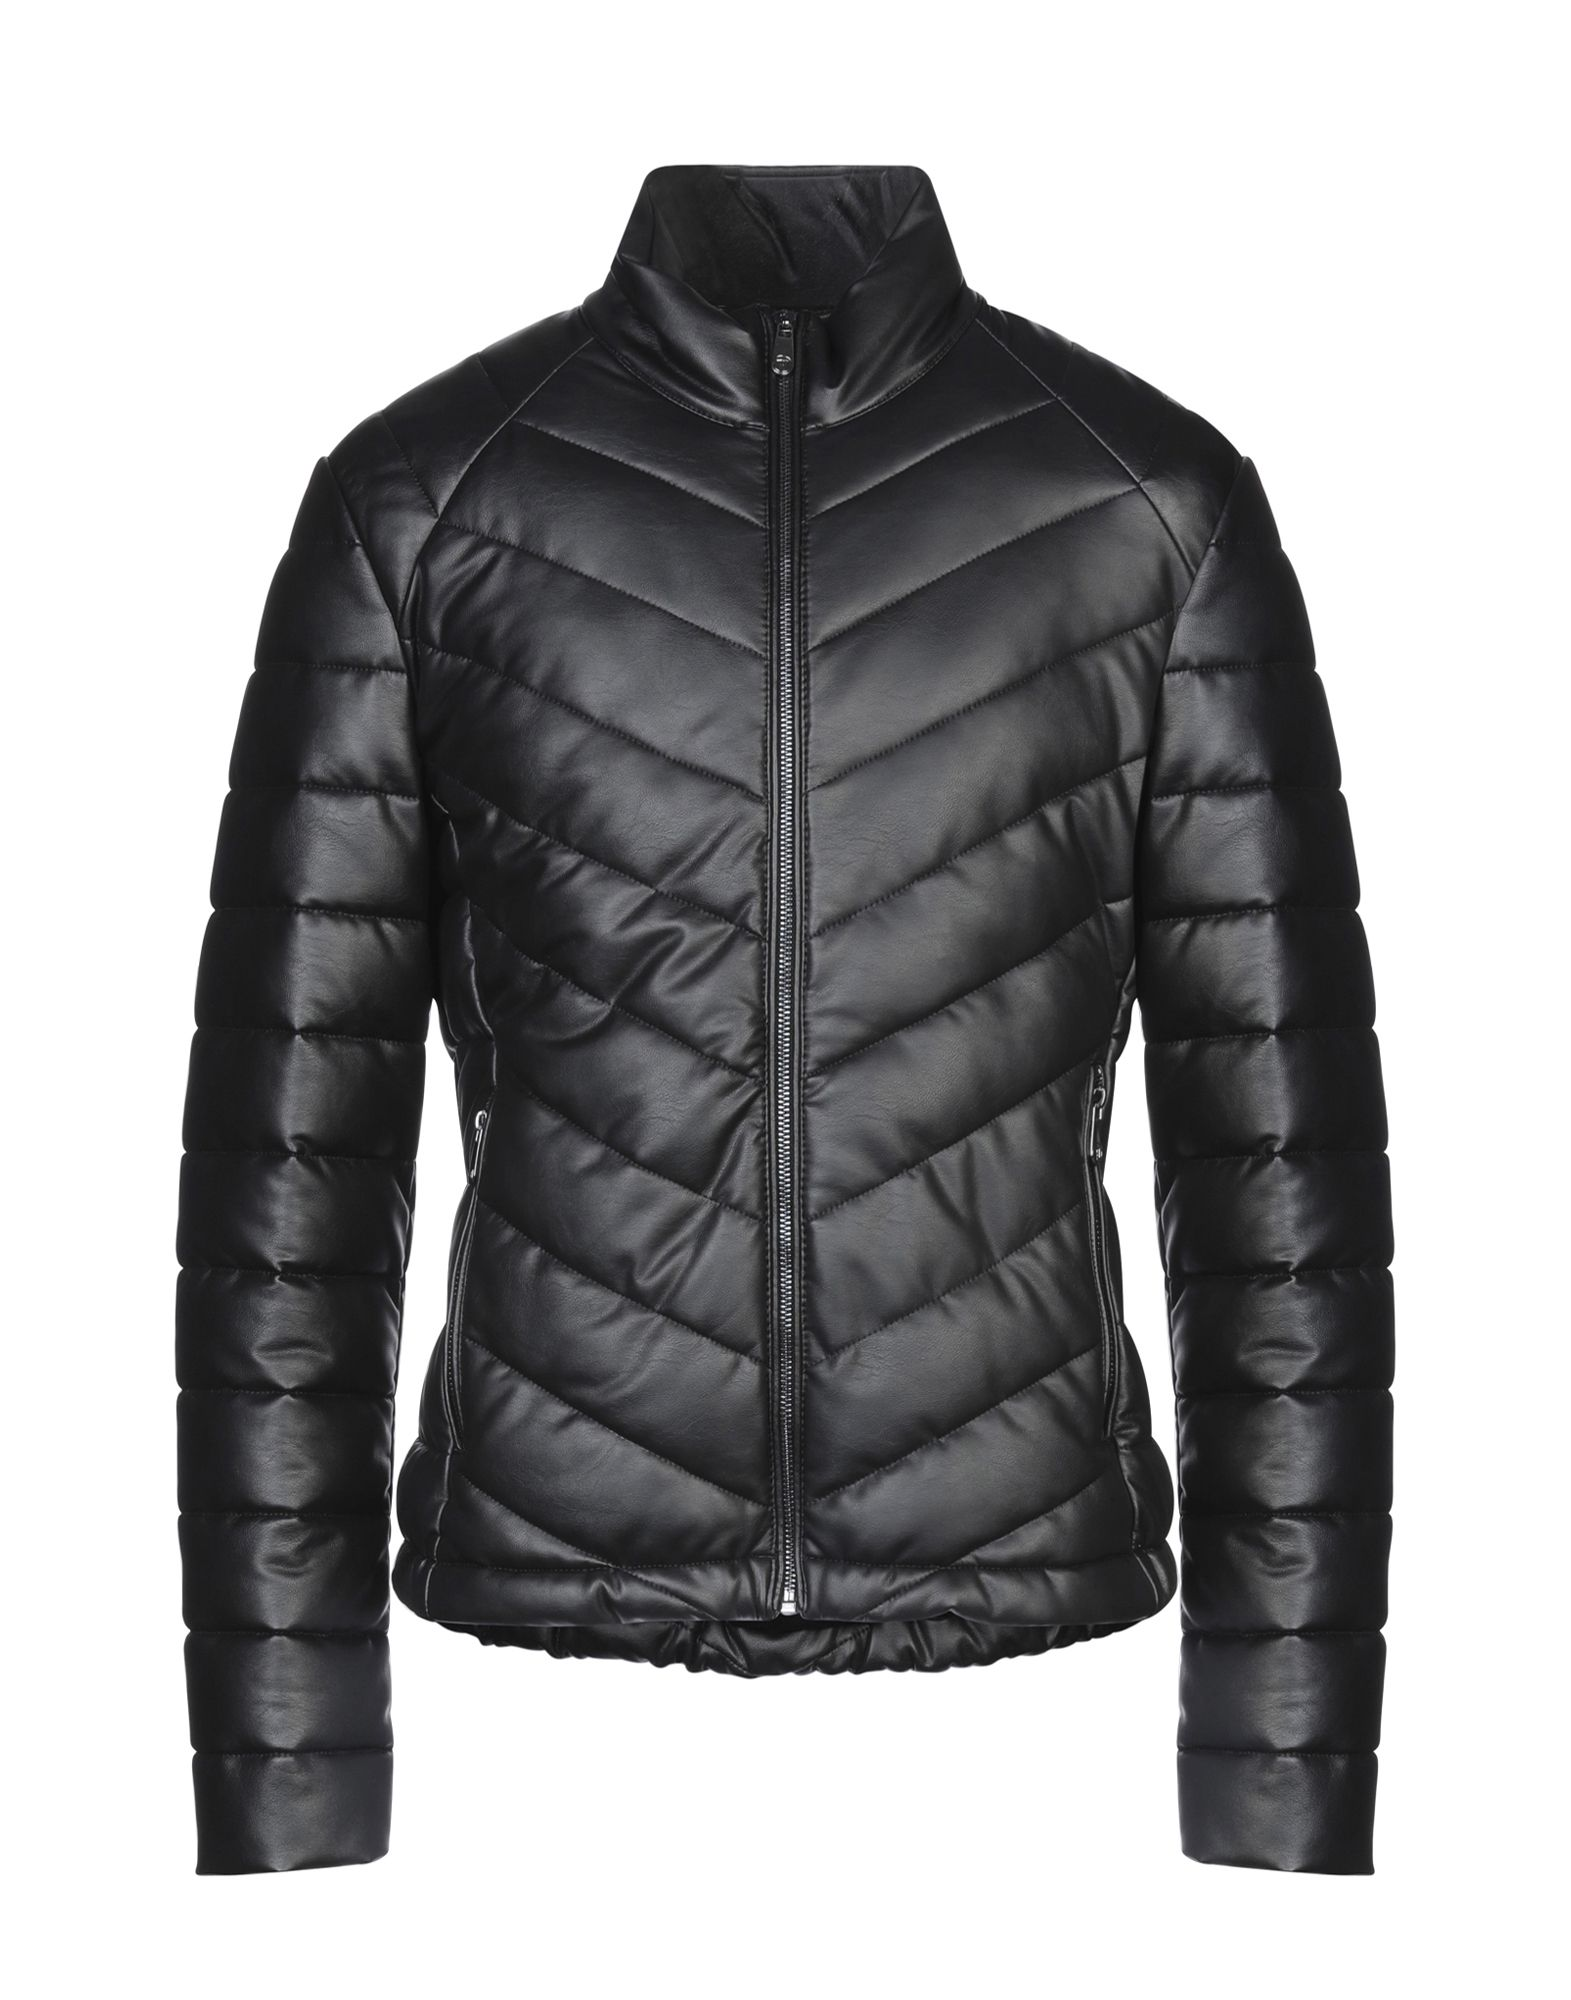 TRUSSARDI JEANS Synthetic Down Jackets - Item 41947255